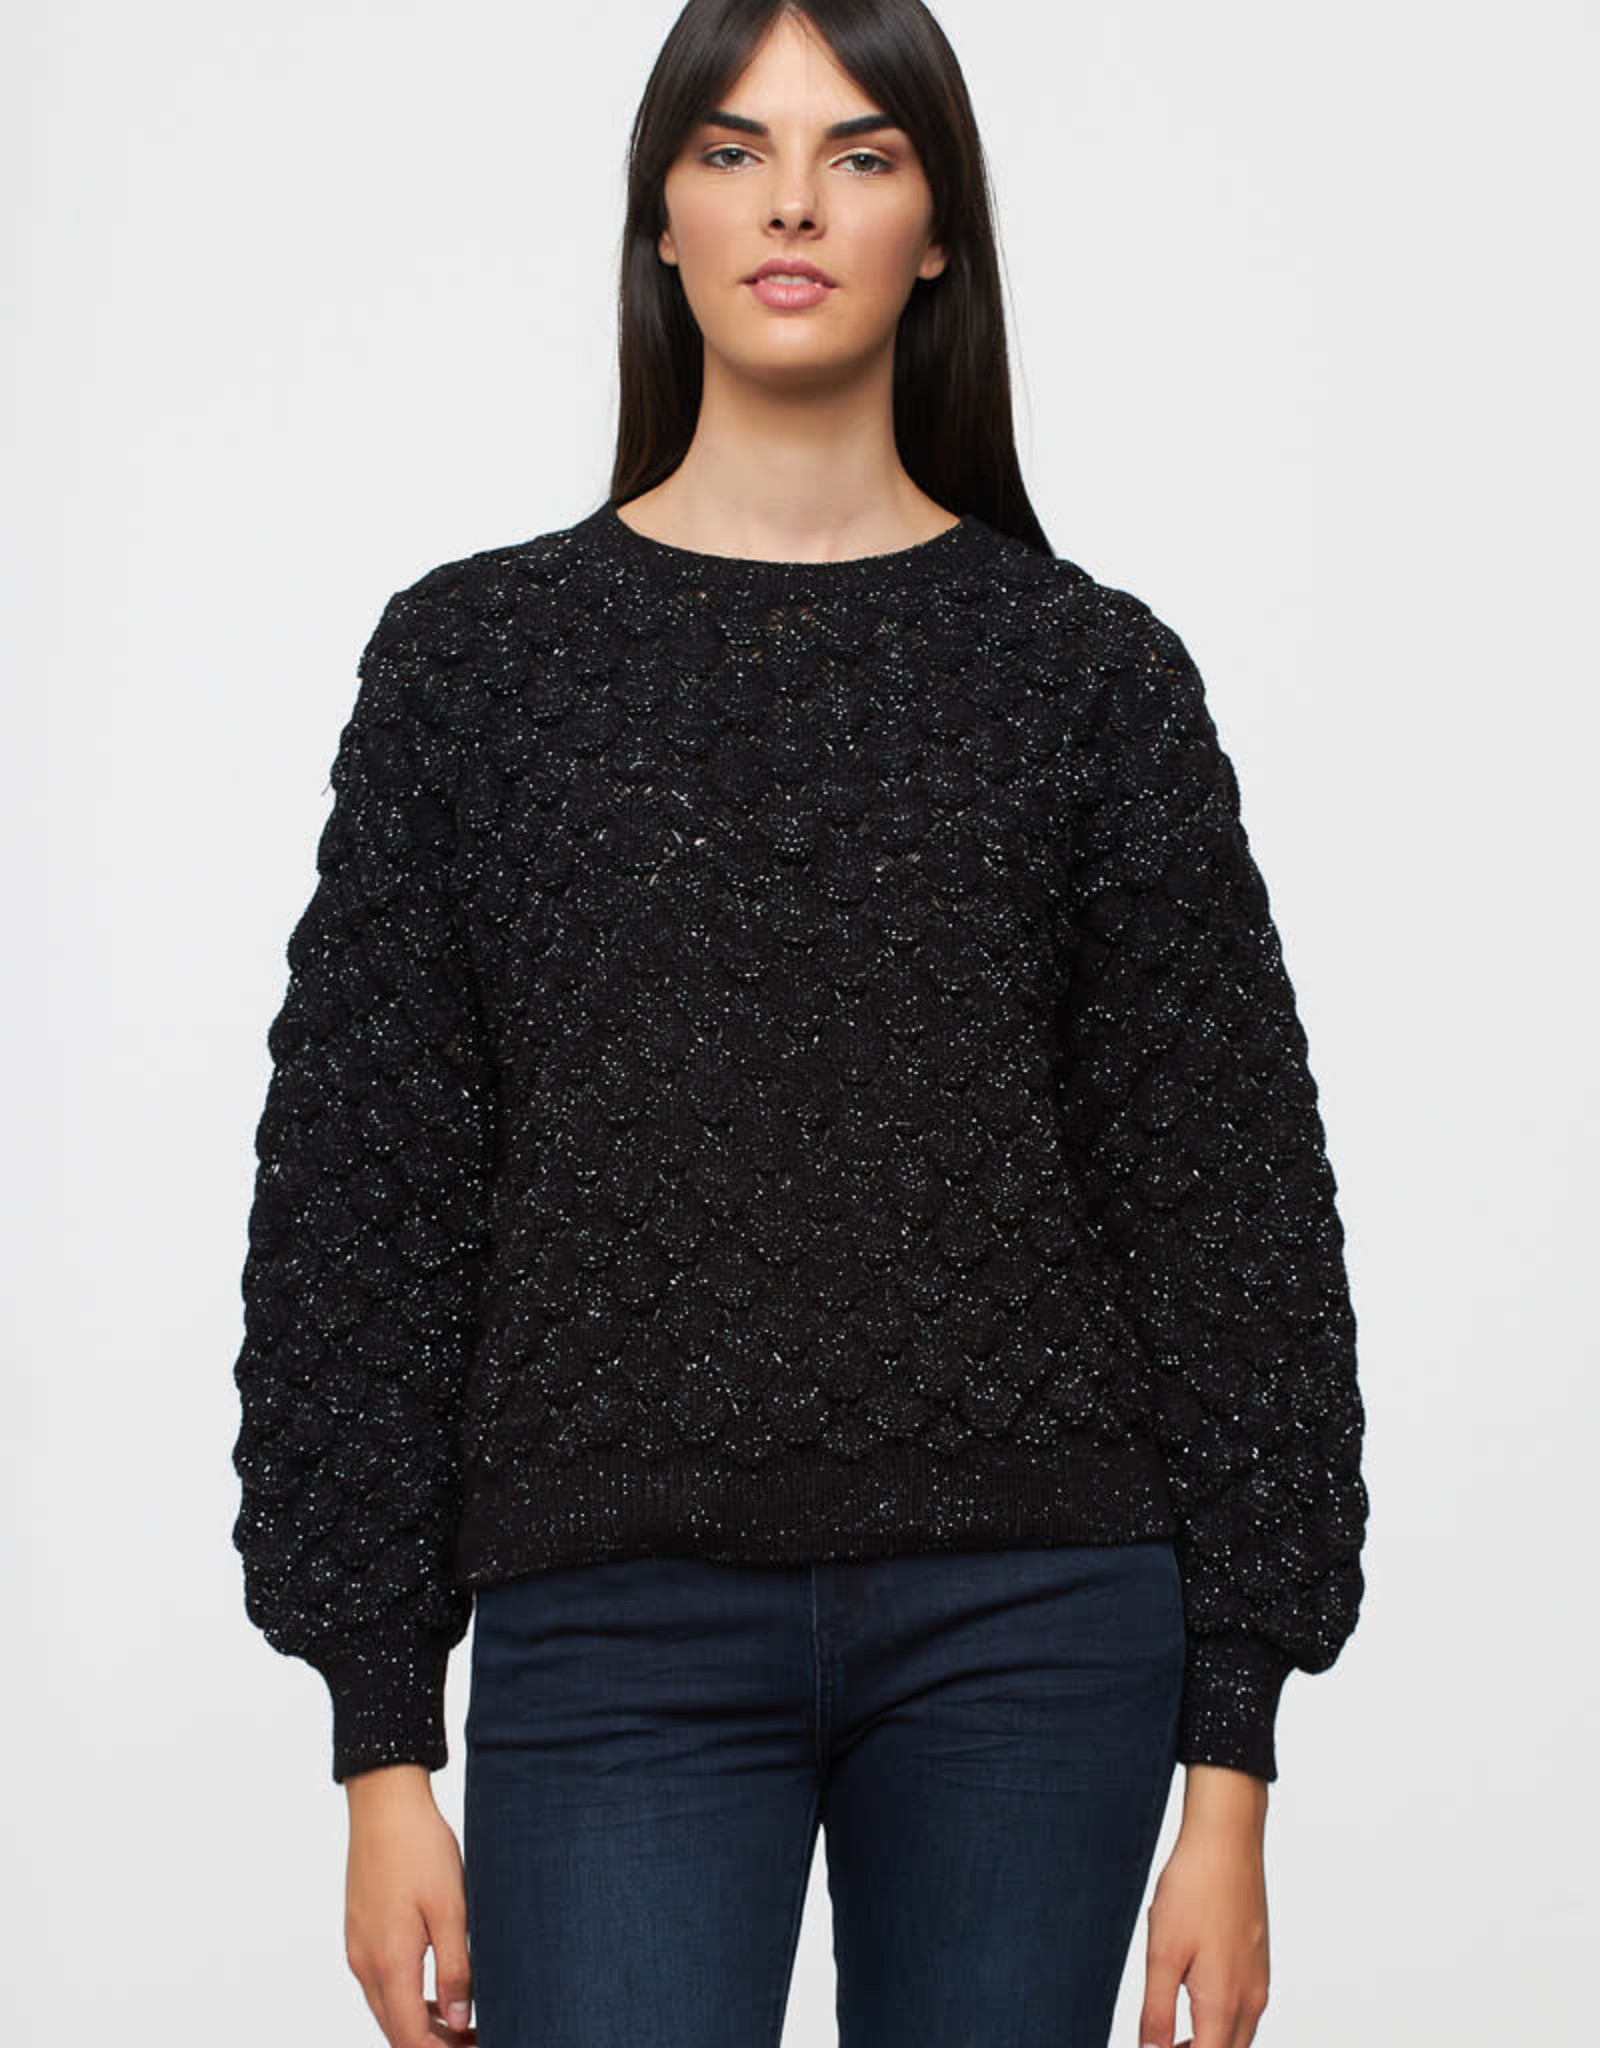 Shell Stitch Pullover - 2 Colors